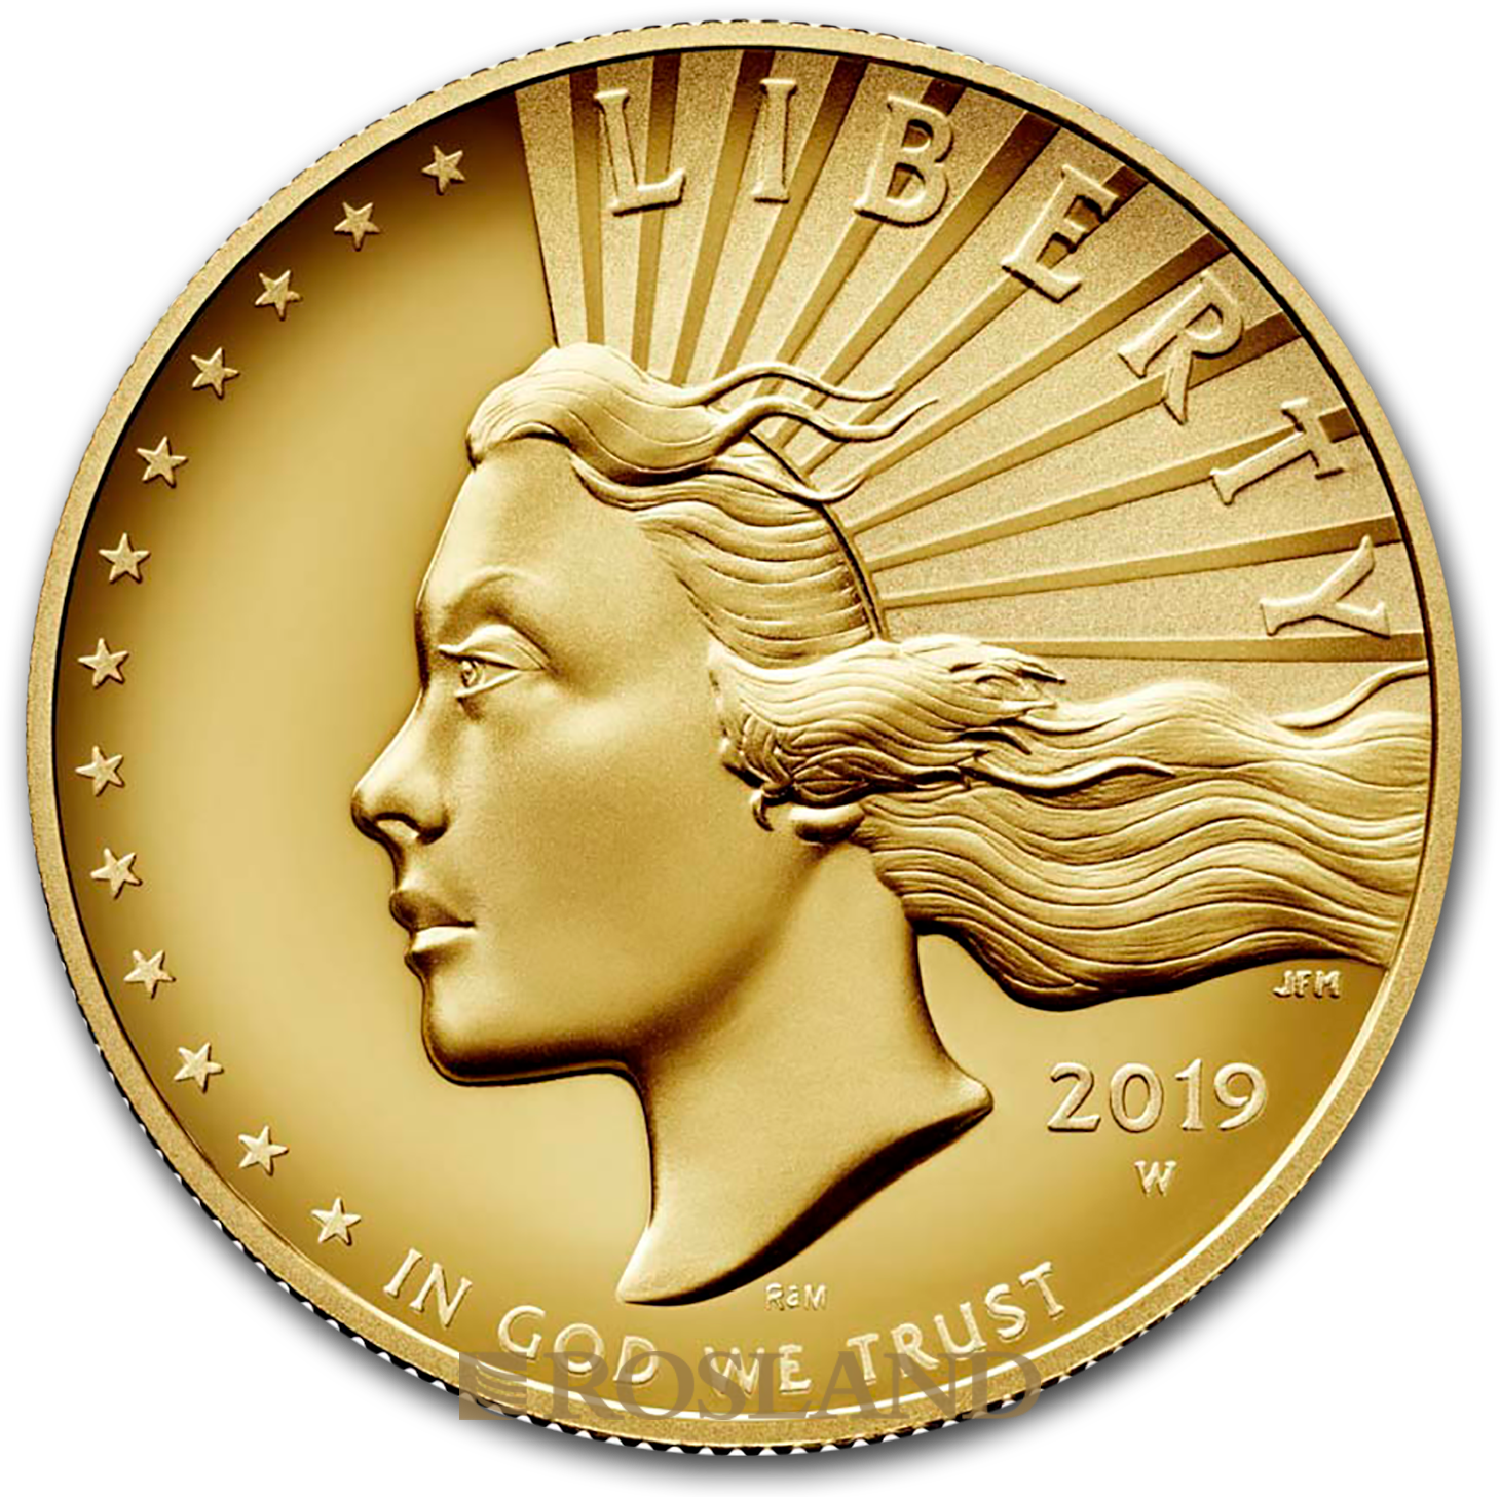 1 Unze Goldmünze American Liberty 2019 PL (HR, Box, Zertifikat)